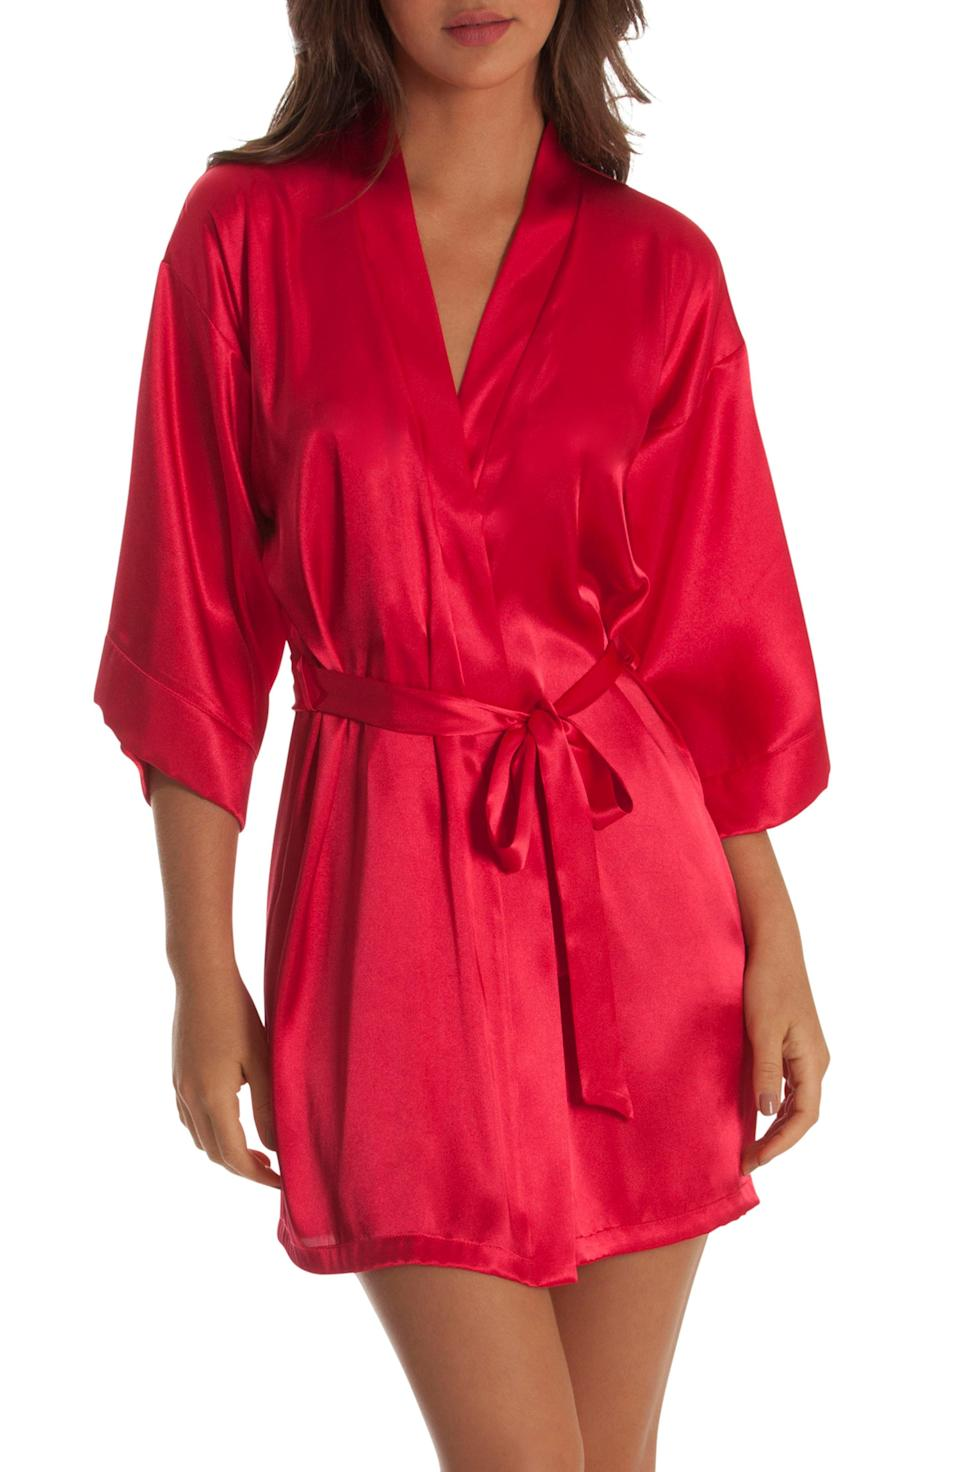 "<p><strong>In Bloom By Jonquil</strong></p><p>nordstrom.com</p><p><strong>$48.00</strong></p><p><a href=""https://shop.nordstrom.com/s/in-bloom-by-jonquil-satin-robe-nordstrom-exclusive/4344068"" rel=""nofollow noopener"" target=""_blank"" data-ylk=""slk:SHOP NOW"" class=""link rapid-noclick-resp"">SHOP NOW</a></p><p>You just might <a href=""https://www.womansday.com/life/g955/gifts-for-her/"" rel=""nofollow noopener"" target=""_blank"" data-ylk=""slk:enjoy gifting"" class=""link rapid-noclick-resp"">enjoy gifting</a> this satin robe to her as much as she'll love wearing it (wink, wink).</p>"